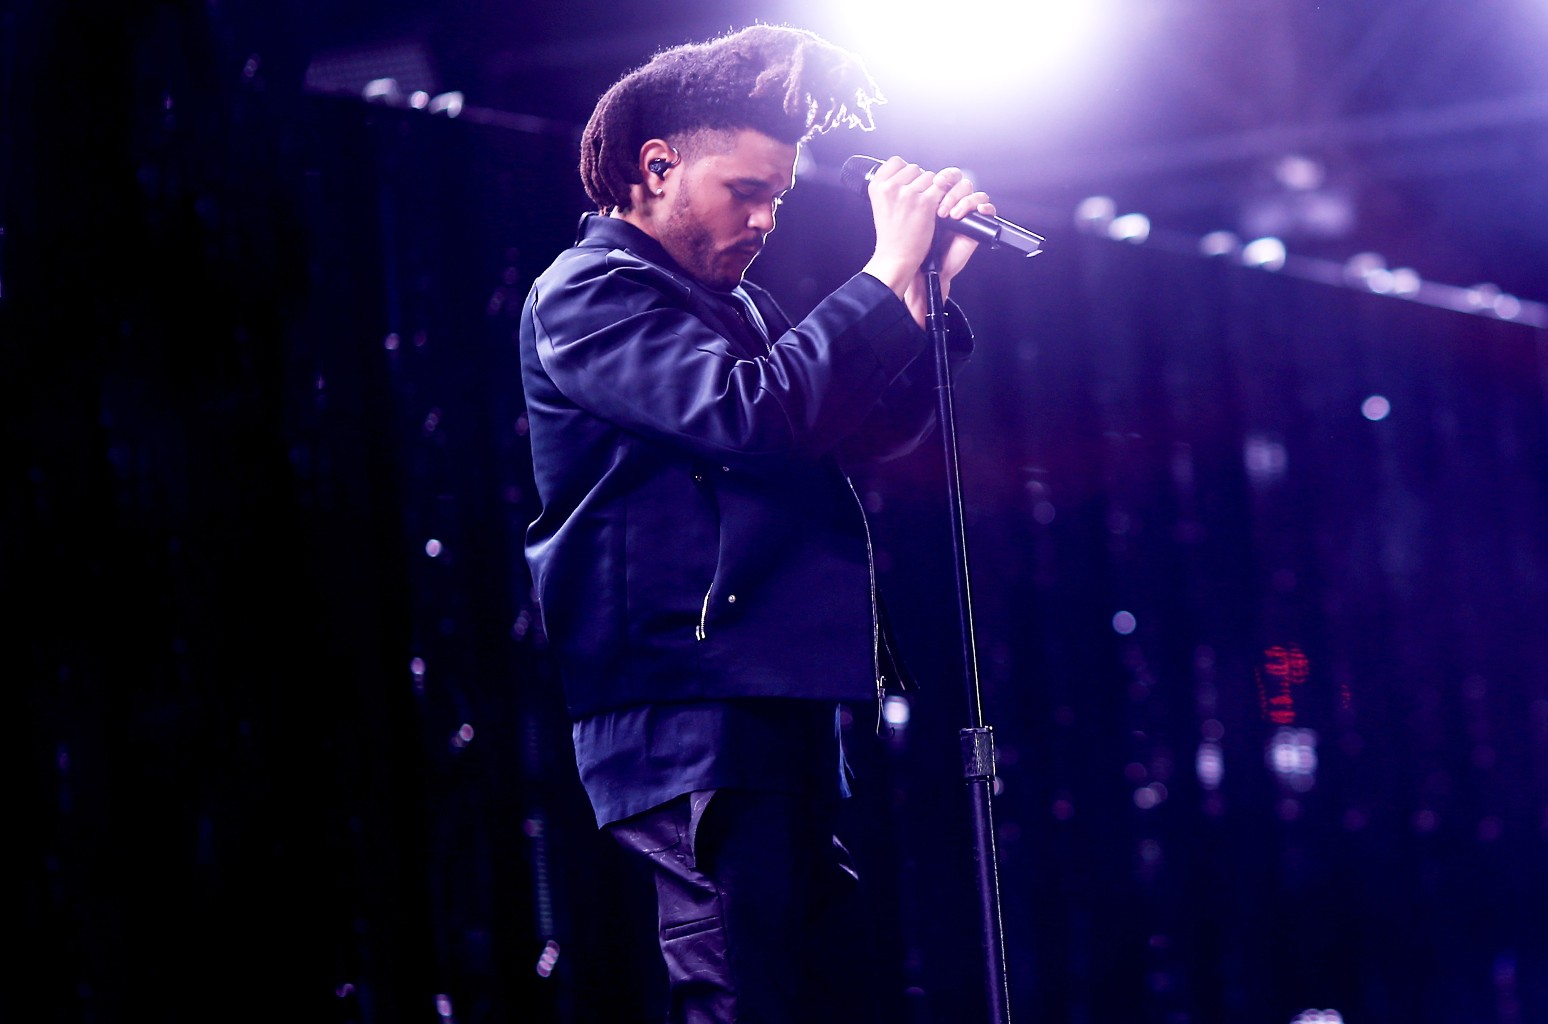 The Weeknd performs at Coachella